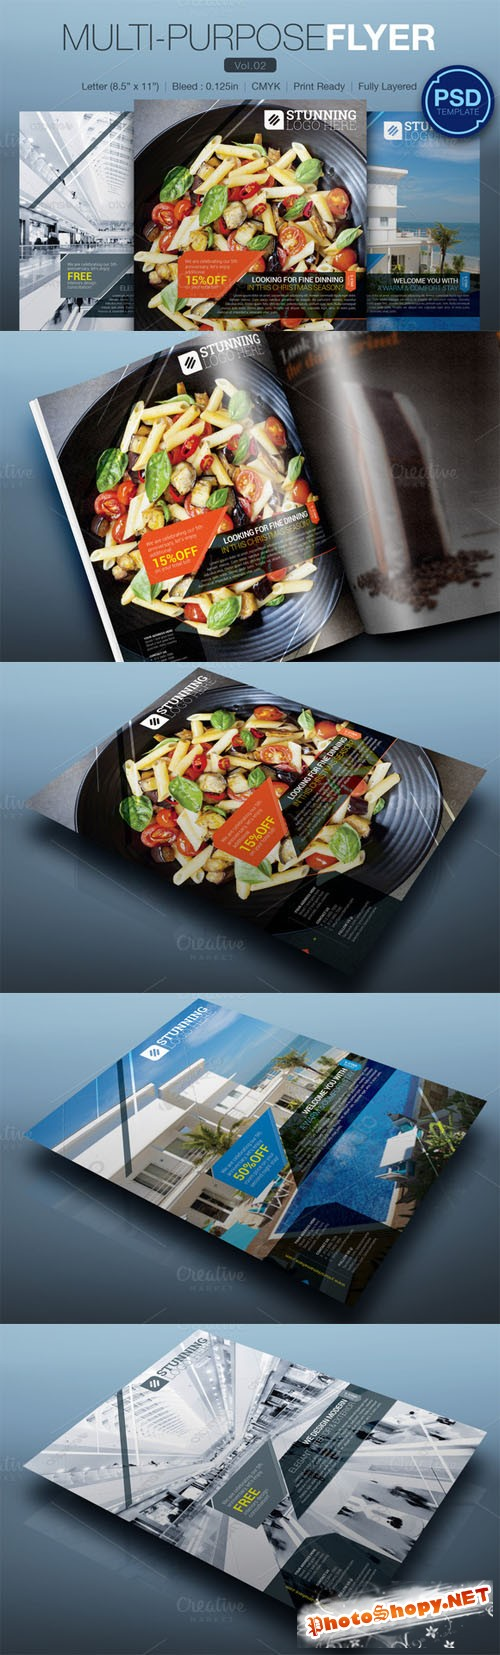 Multipurpose Flyer Vol.02 - Creativemarket 111199